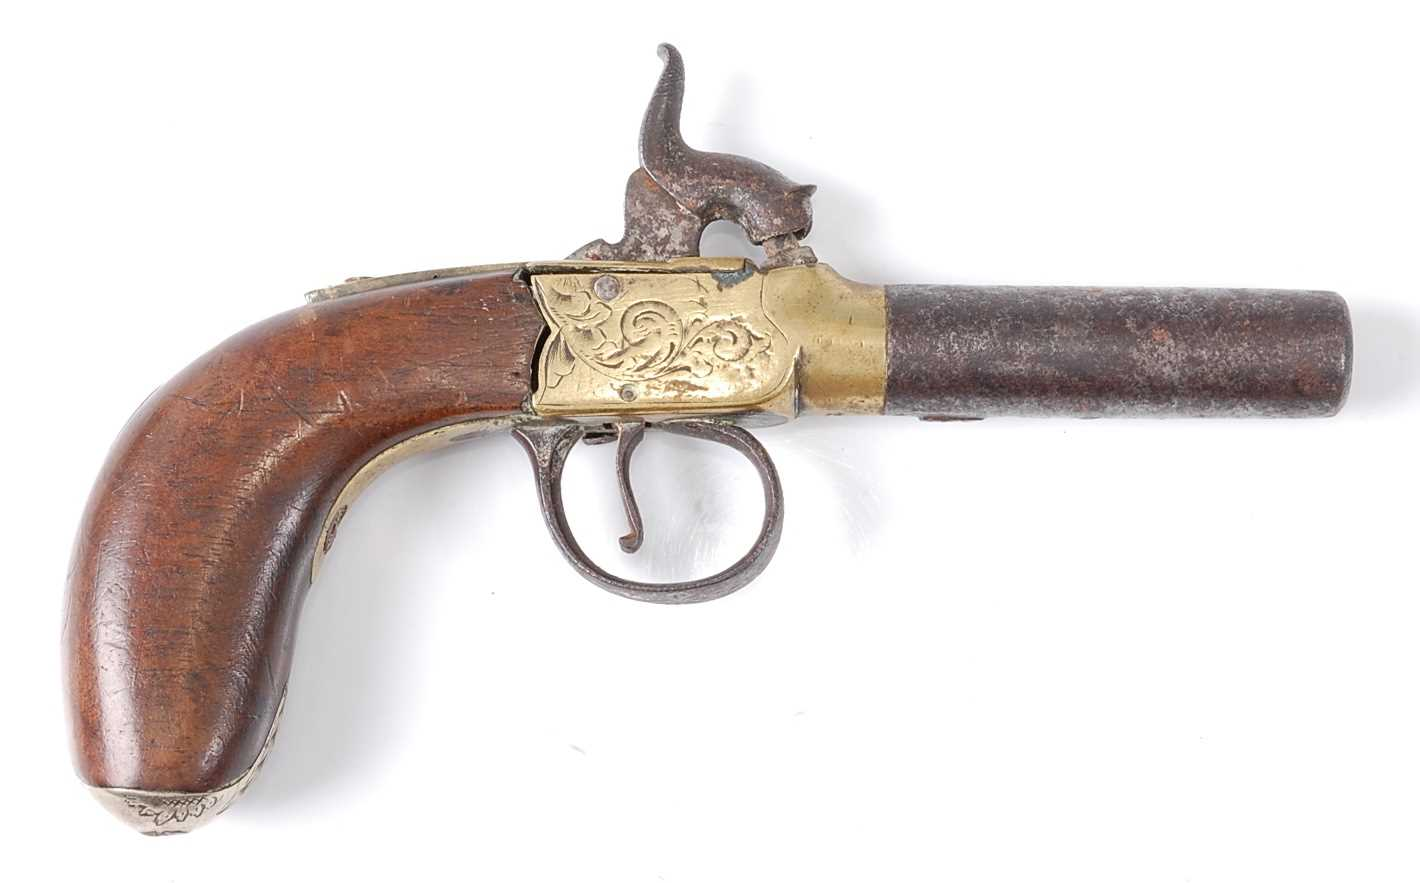 A 19th century percussion box-lock pocket pistol, having a 6cm turn-off steel barrel with engraved